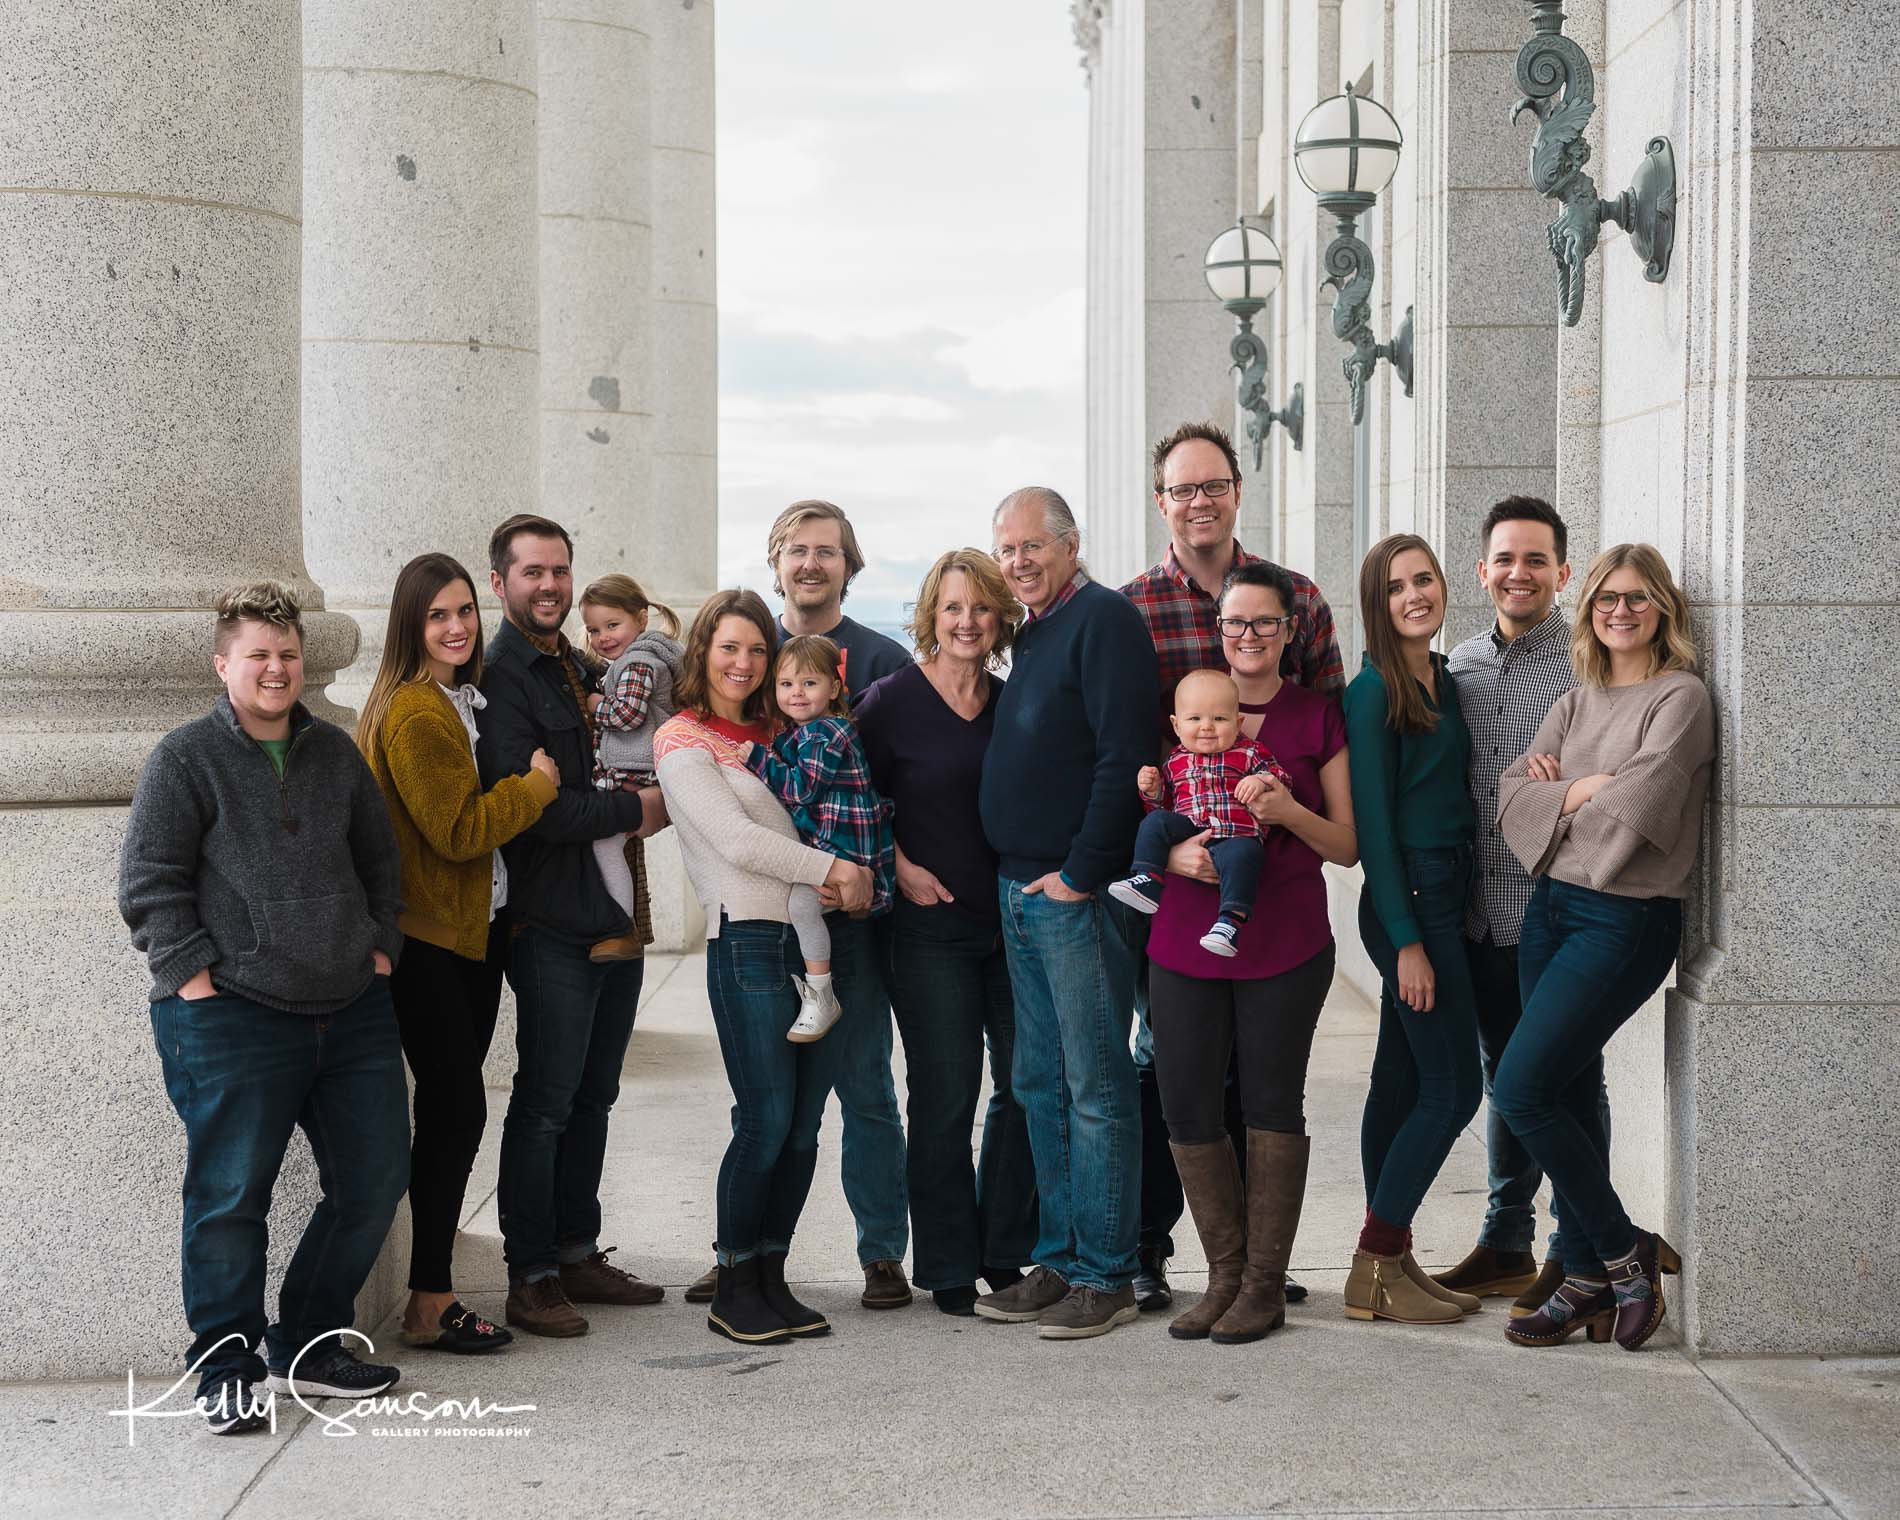 Boyer Family Photography at the Utah State Capitol